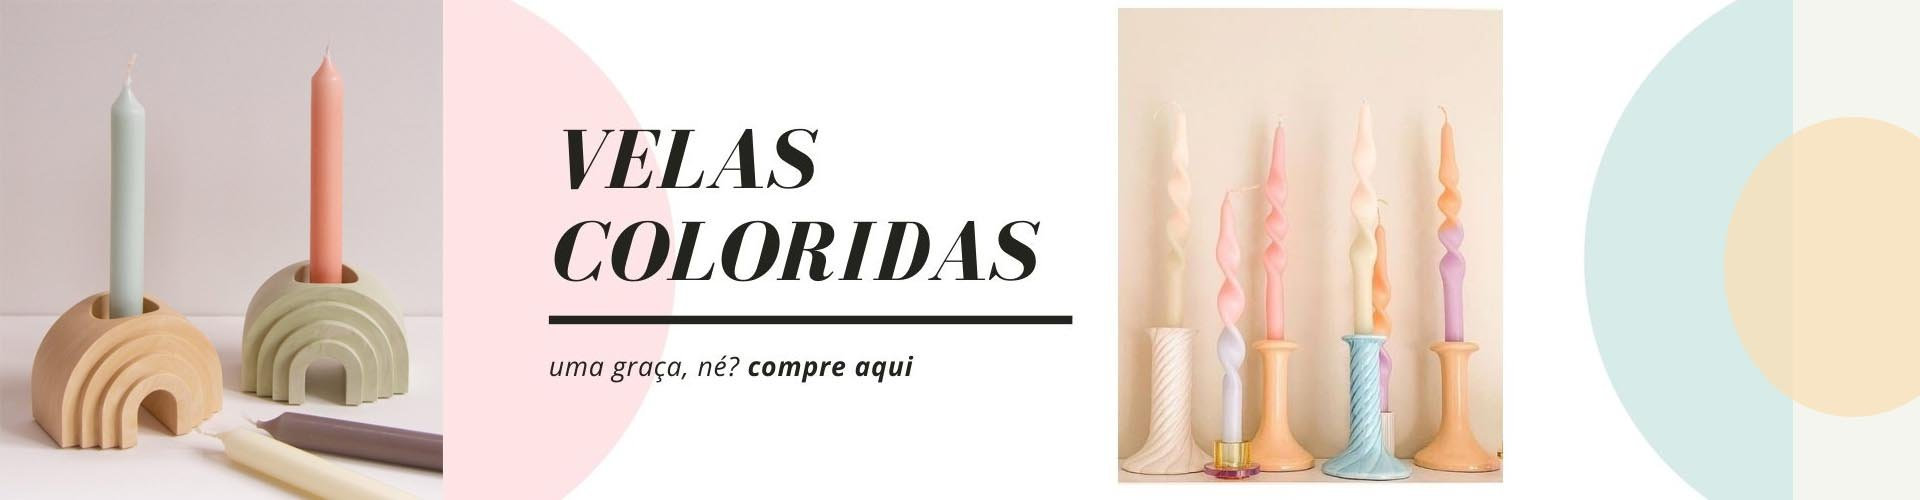 [home] banner bottom velas